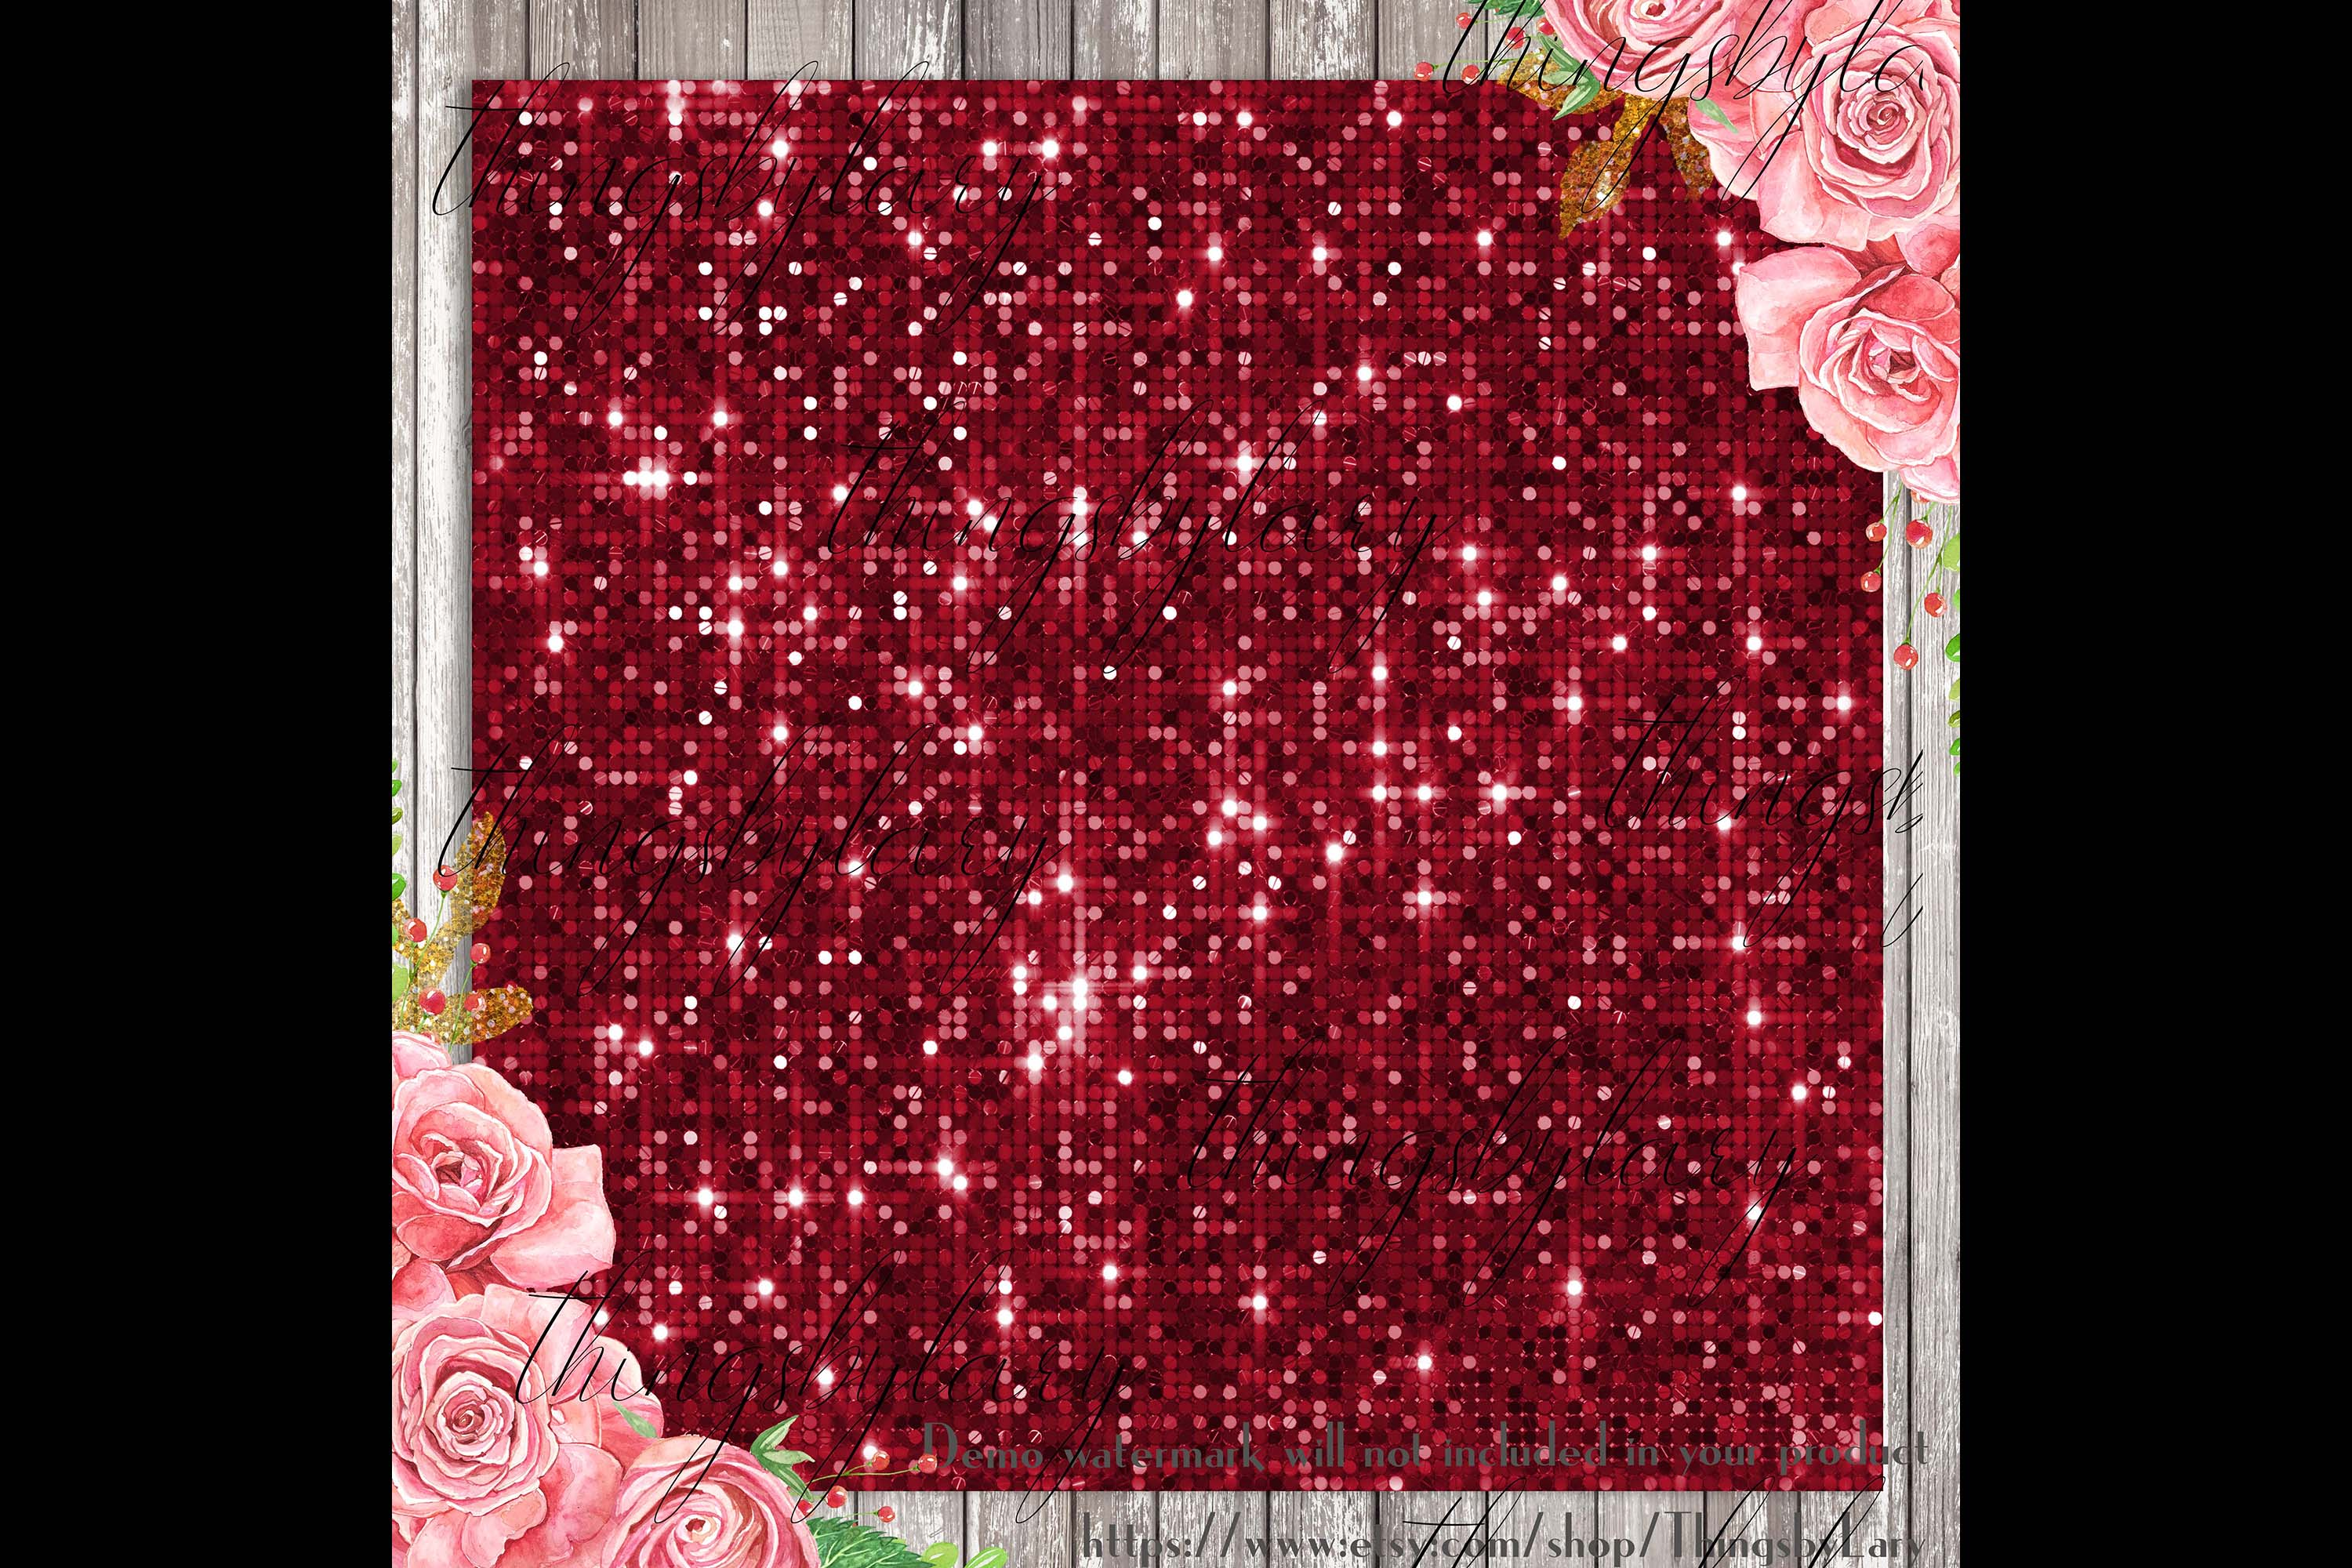 100 Seamless Glowing Bling Bling Disco Sequin Digital Papers example image 3